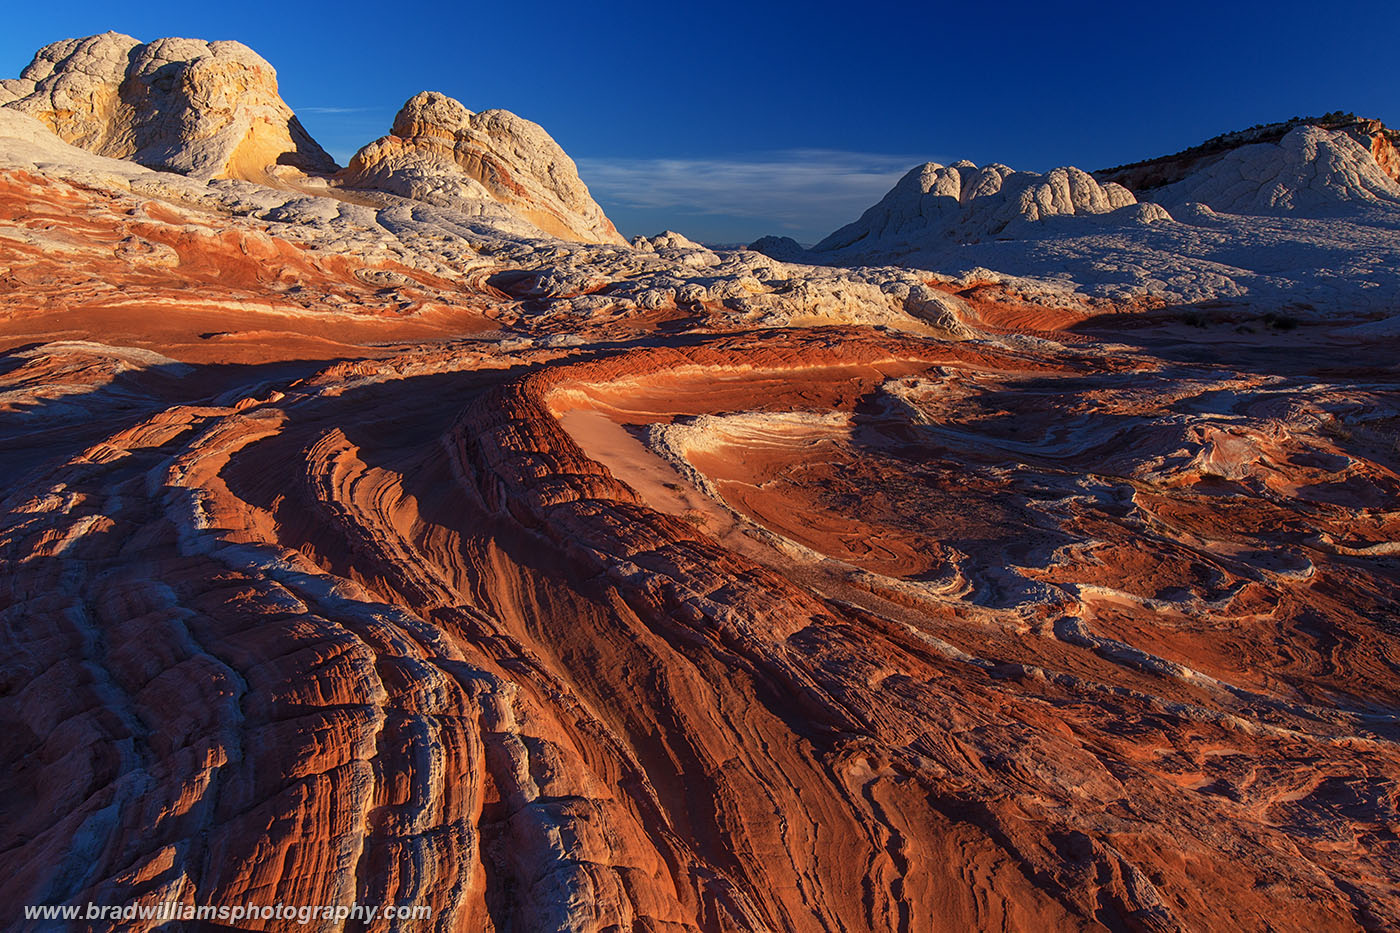 White Pocket, Vermilion Cliffs, Arizona, photo